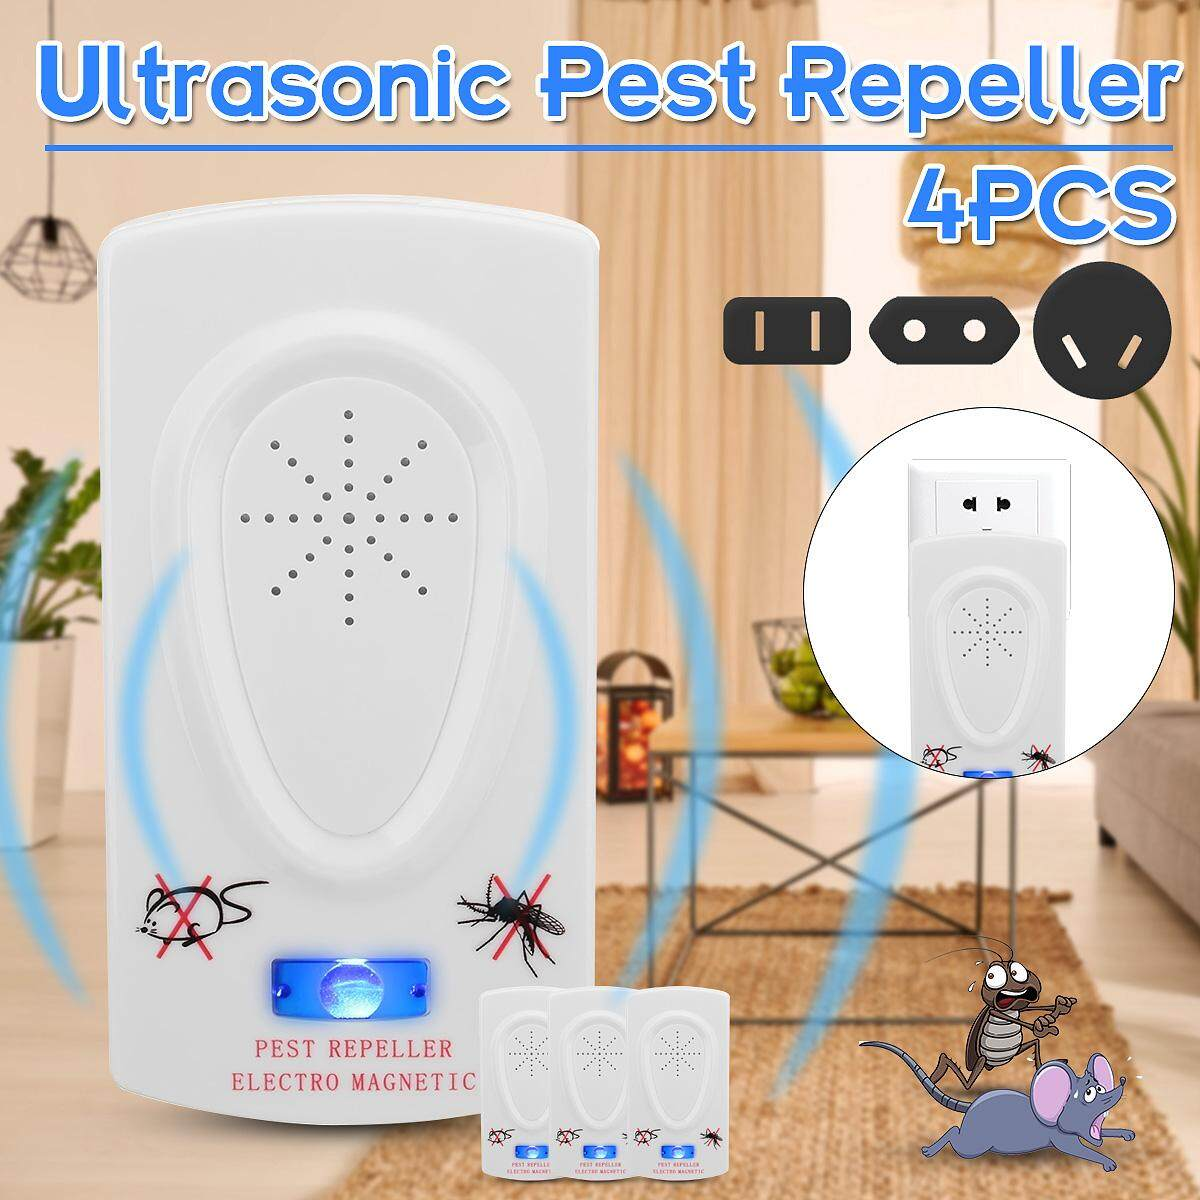 Buy Generic 4pcs Ultrasonic Pest Mouse Repeller Mosquito Fly Circuit Because They Will Get Away From Their Living Place After The Attack Of 3 Please Read Other Caution On Package Box Before Using